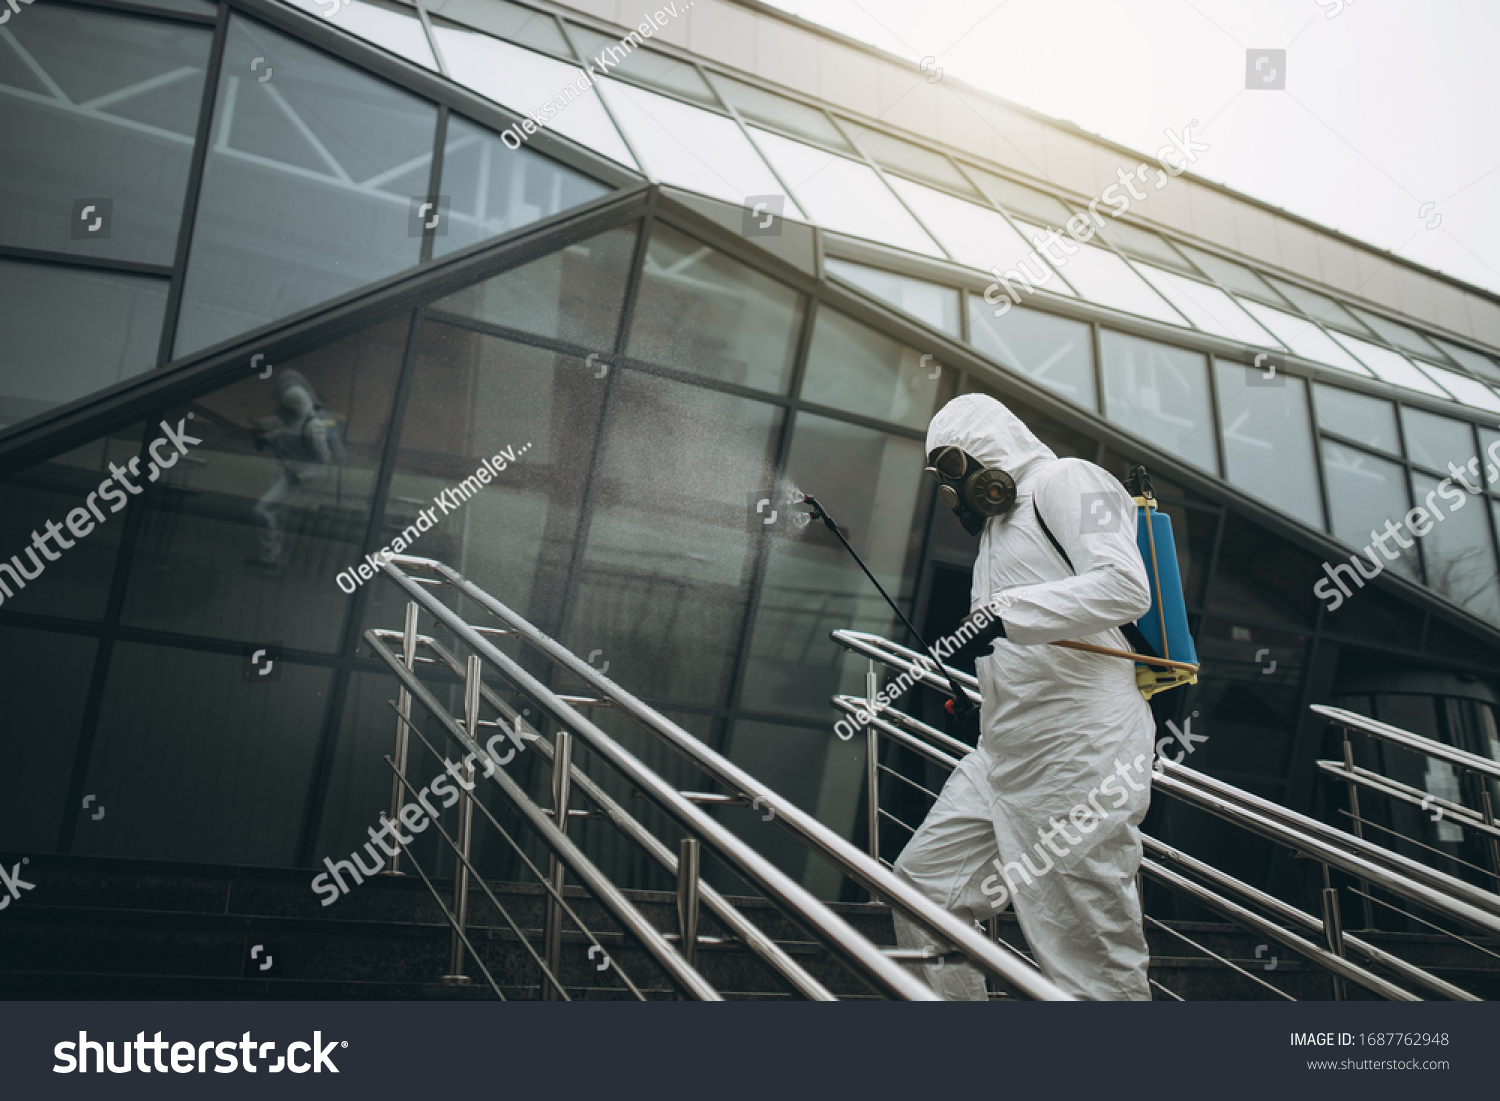 Cleaning and Disinfection at town complex amid the coronavirus epidemic Professional teams for disinfection efforts Infection prevention and control of epidemic Protective suit and mask. #1687762948